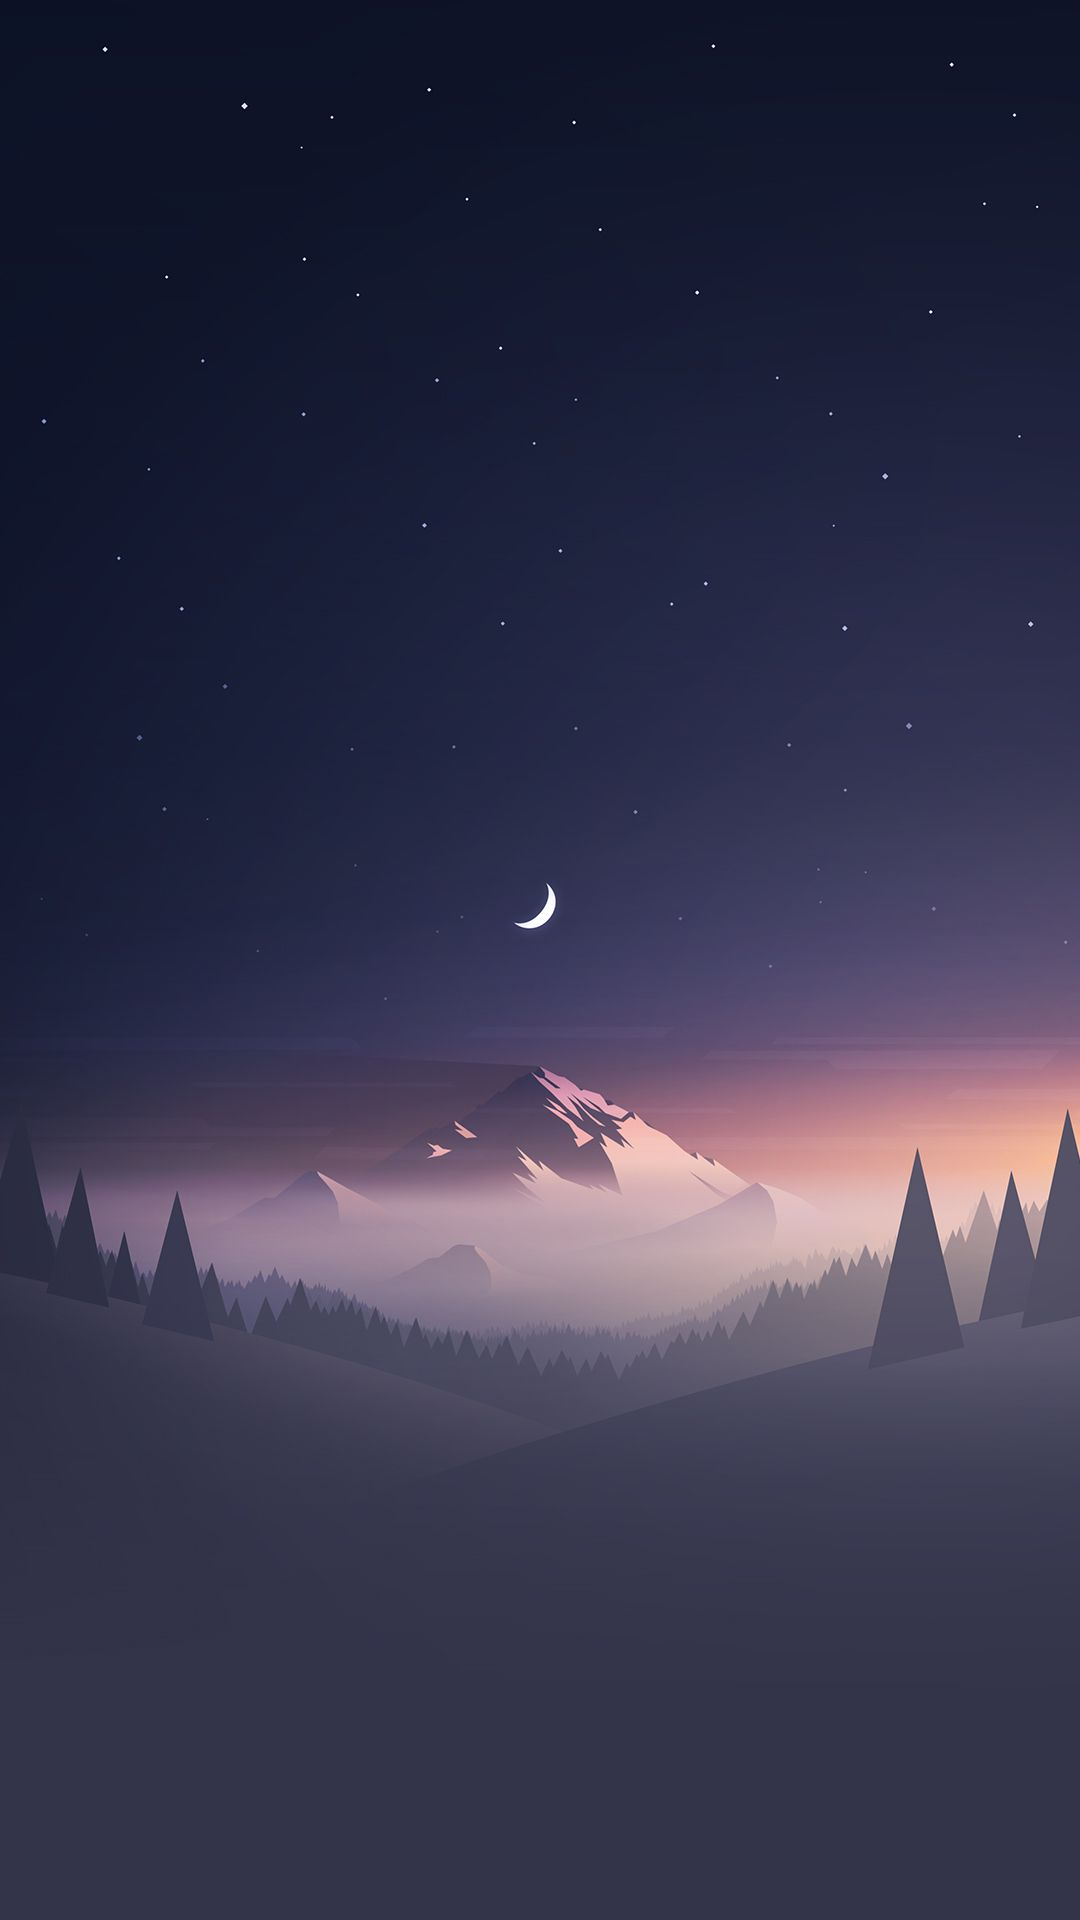 stars and moon winter mountain landscape iphone 6 wallpaper a· forest wallpaper iphonehd wallpaper androidgalaxy